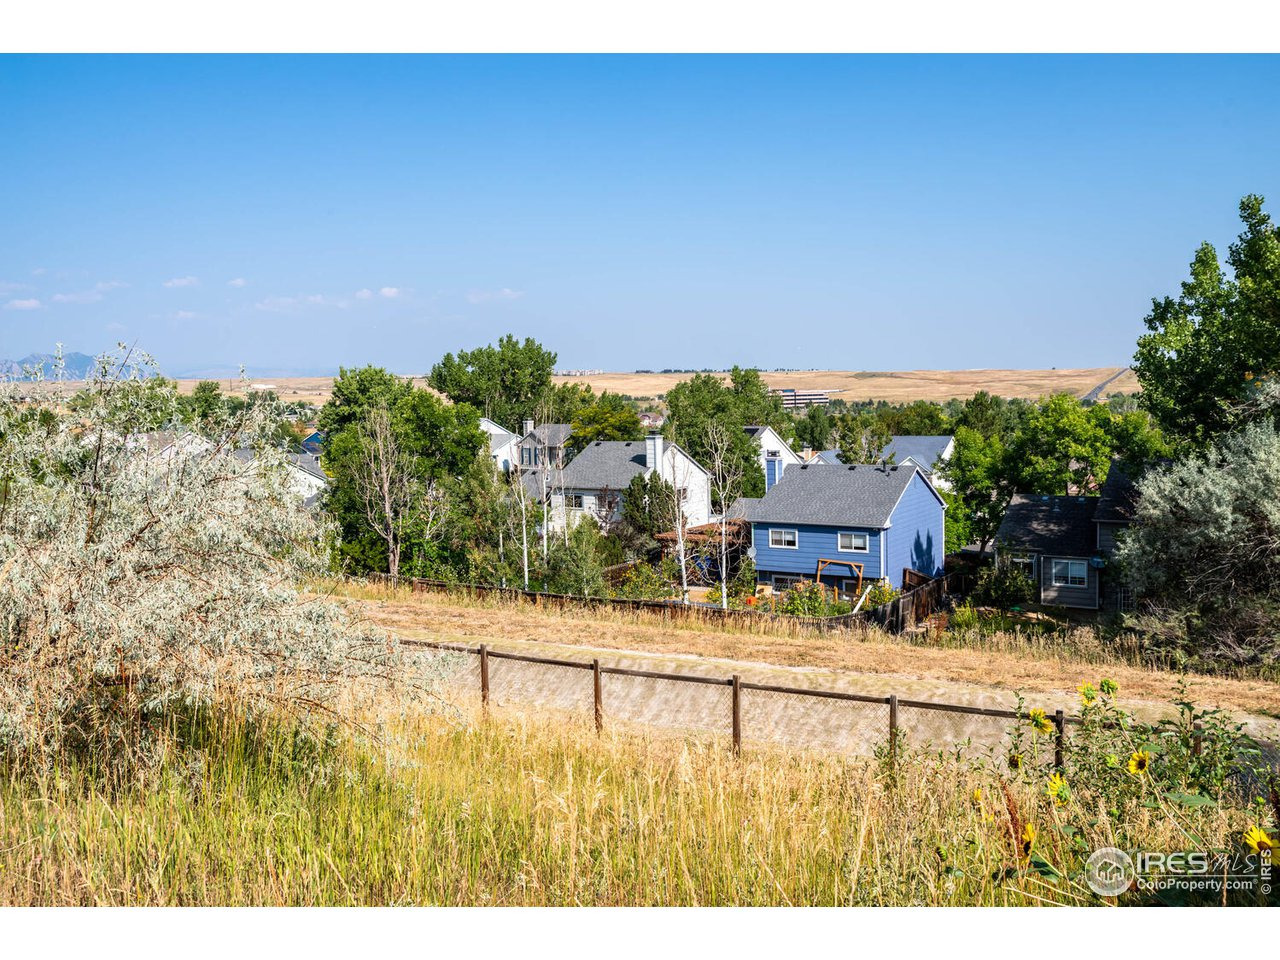 From back yard to open space green belt